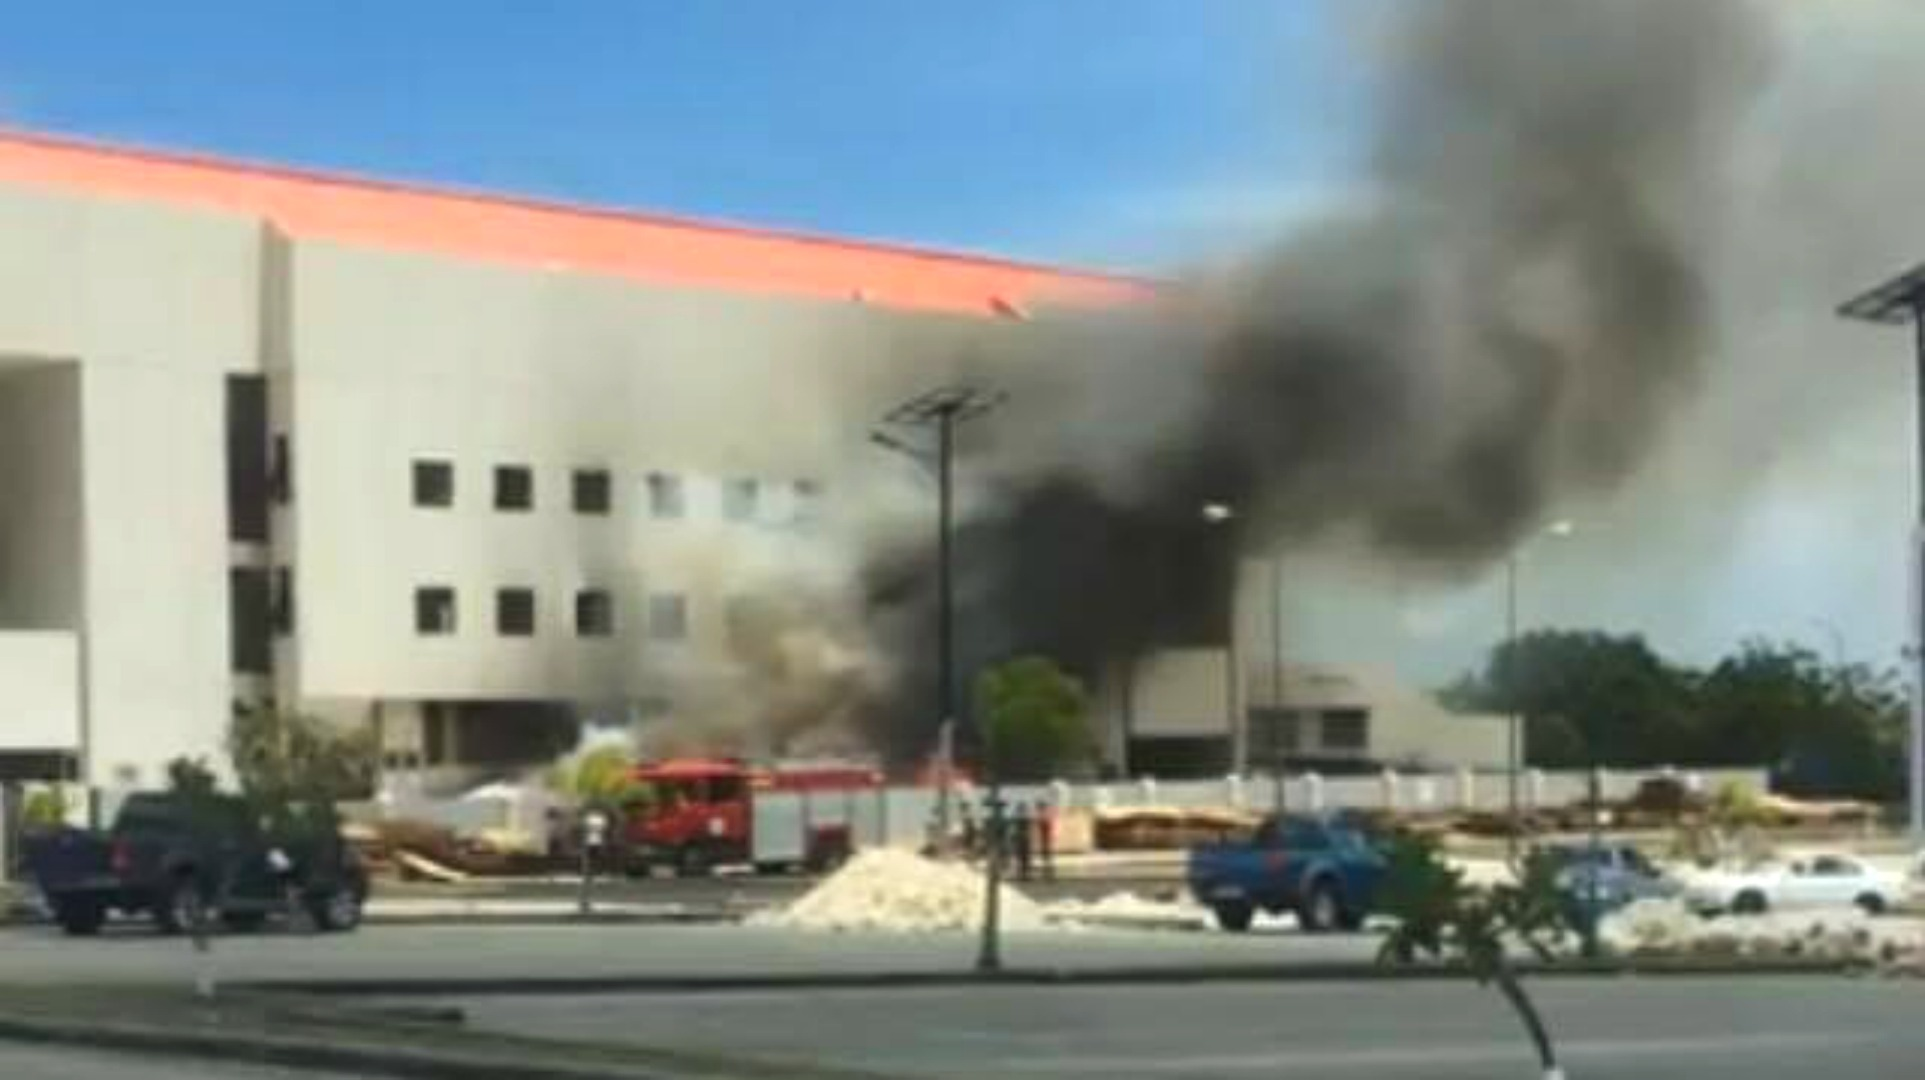 Fire at the Garfield Sobers Gymnasium.